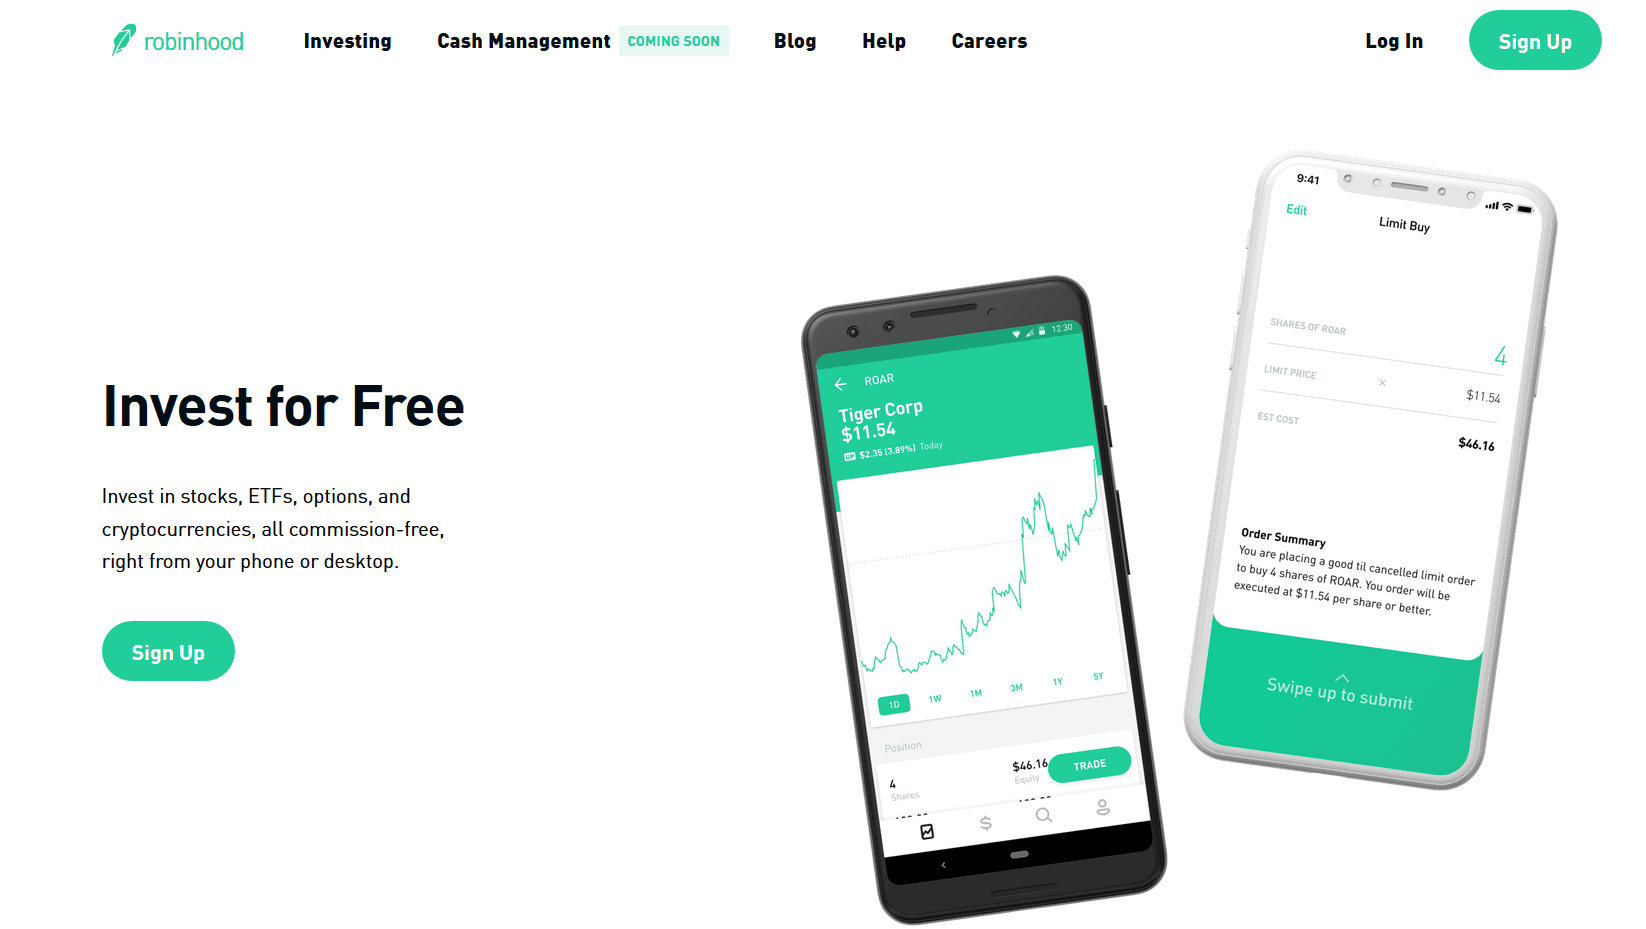 Ebay Price Commission-Free Investing Robinhood